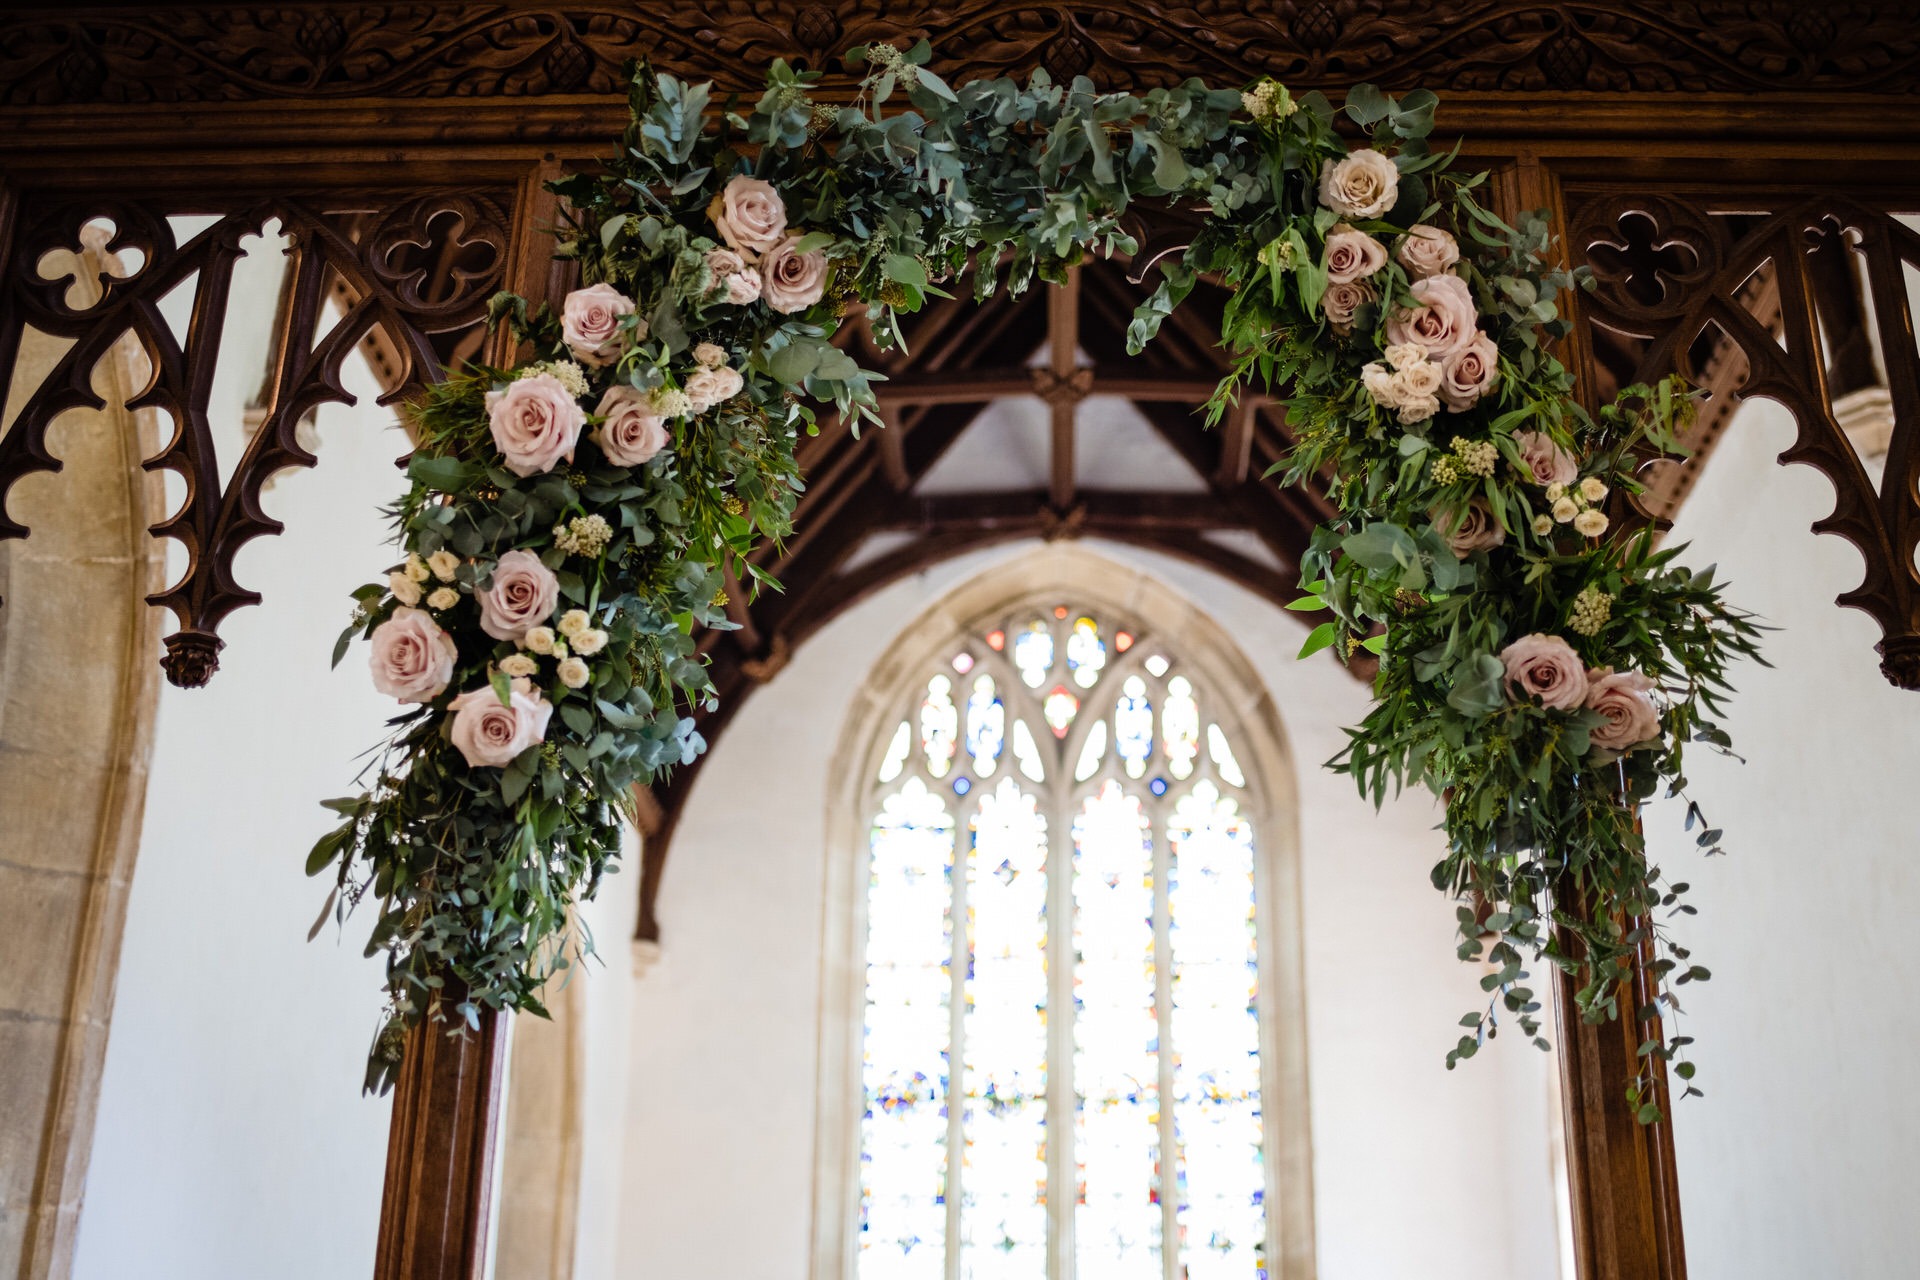 Wedding flower arch in church